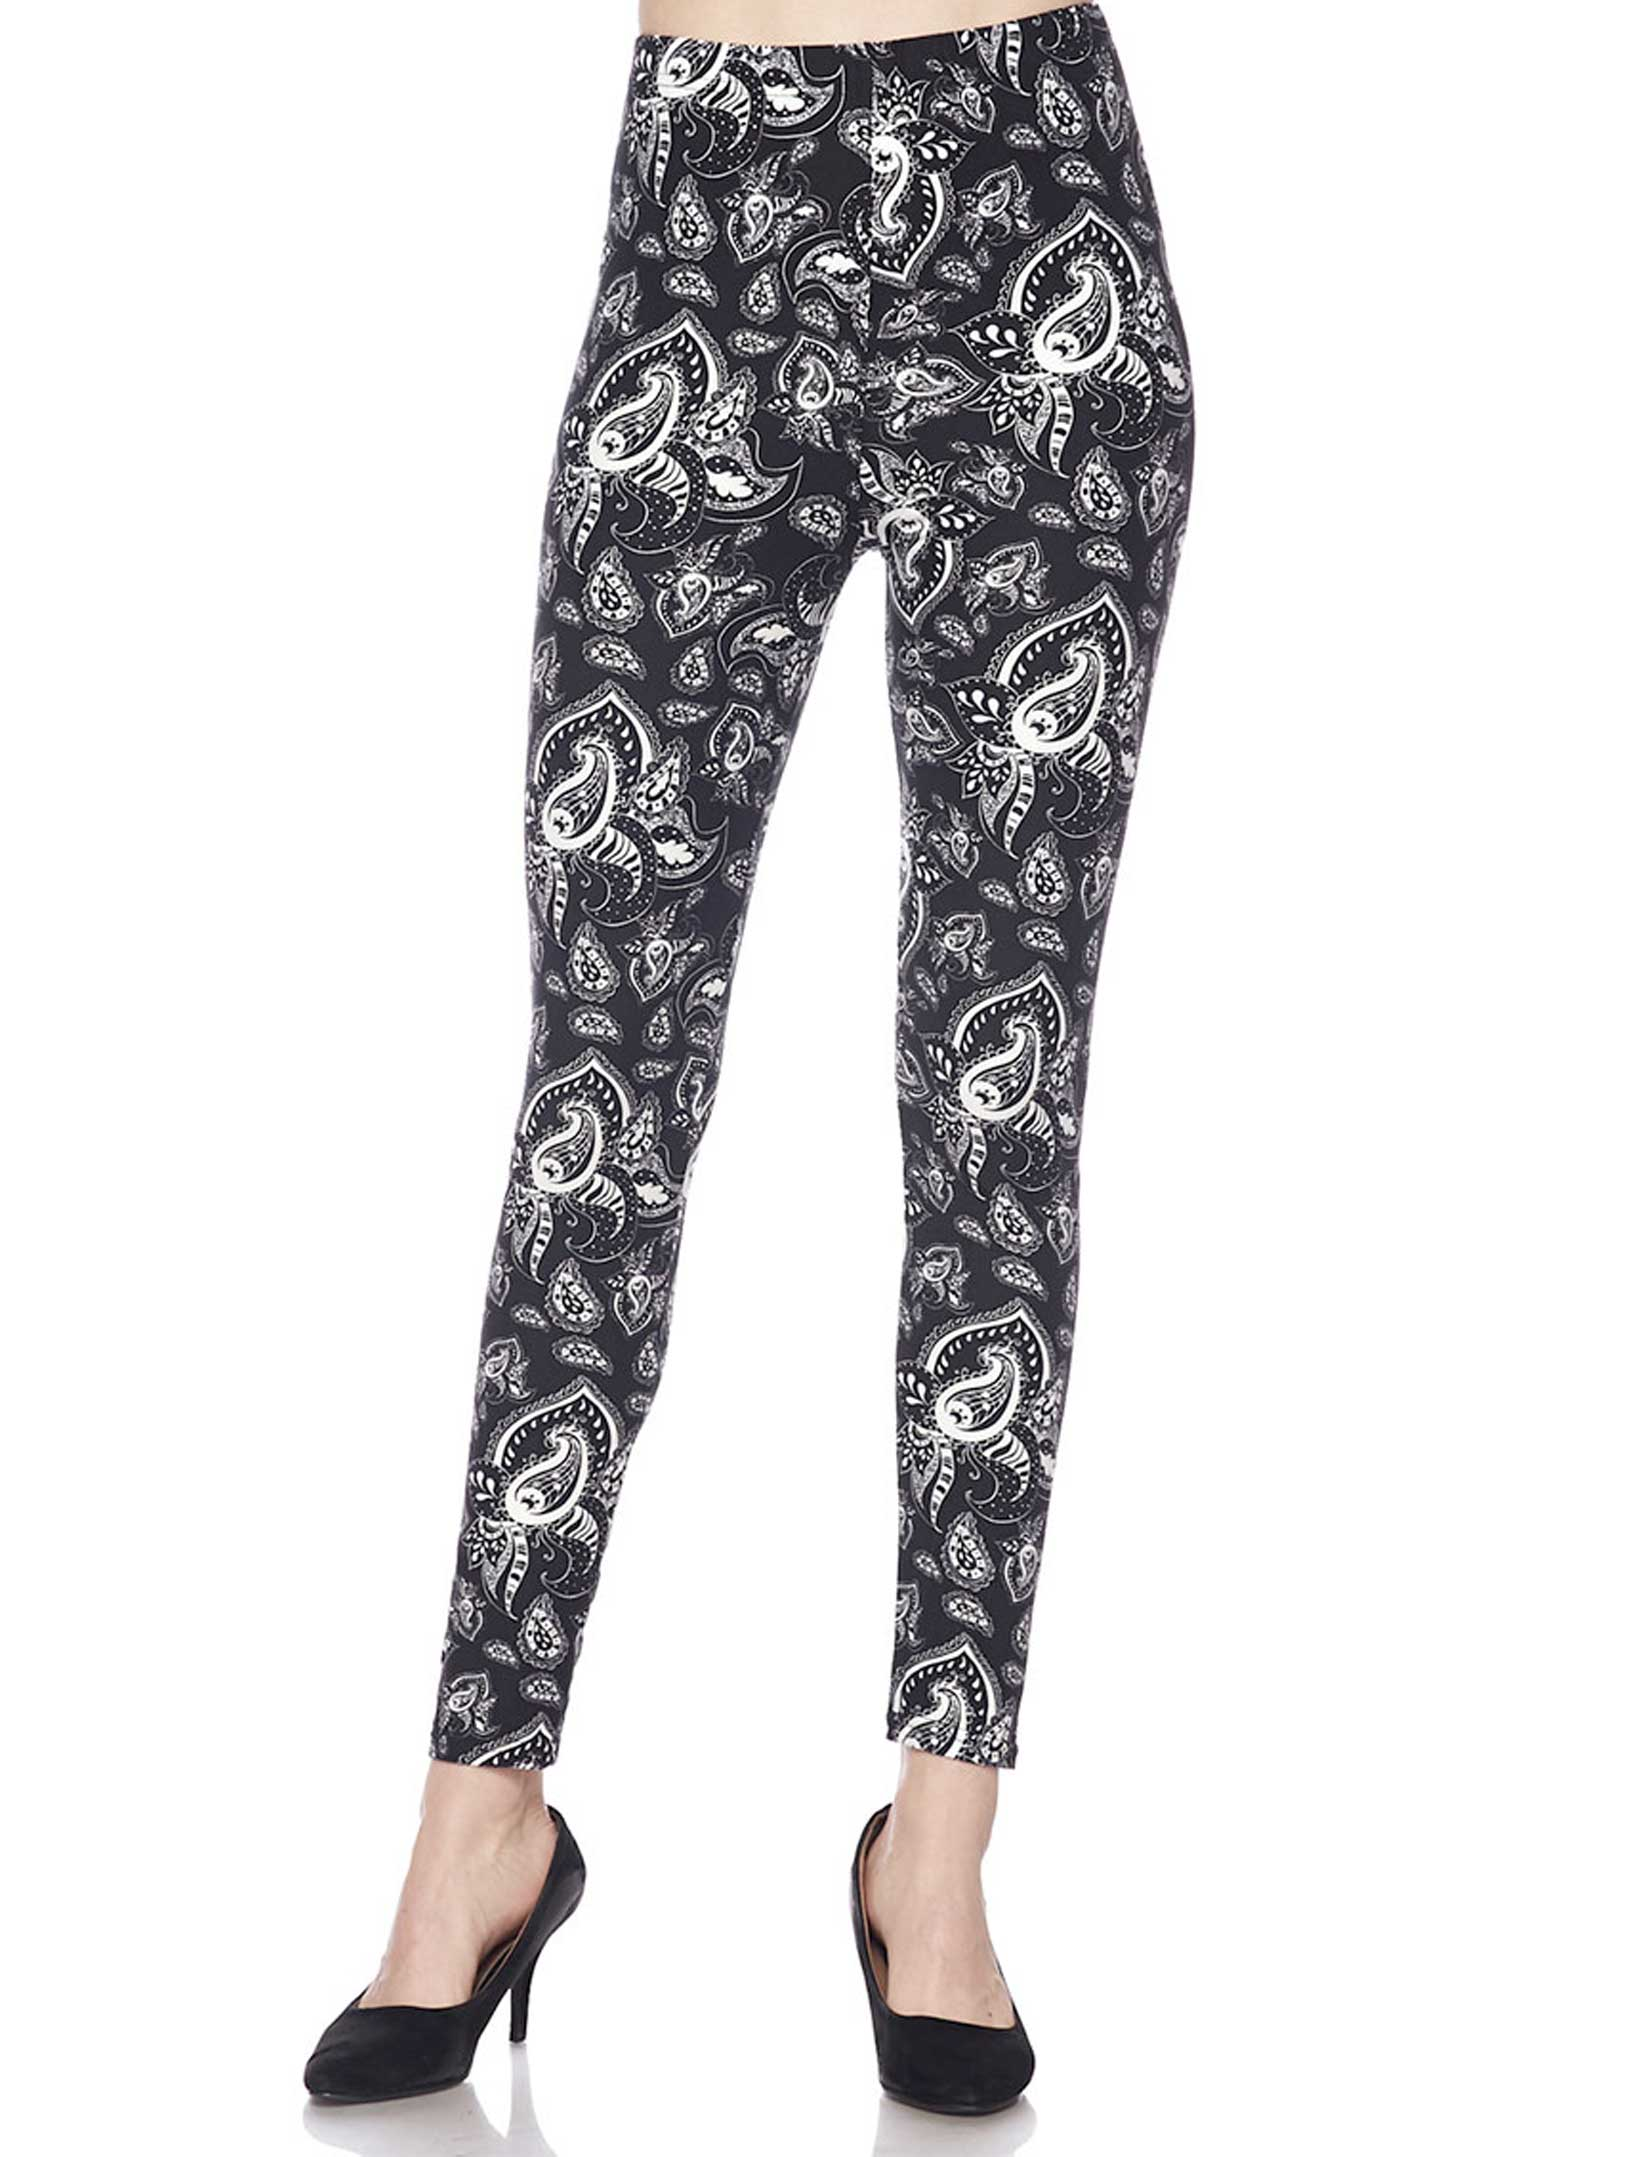 Brushed Fiber Leggings - Ankle Length Prints